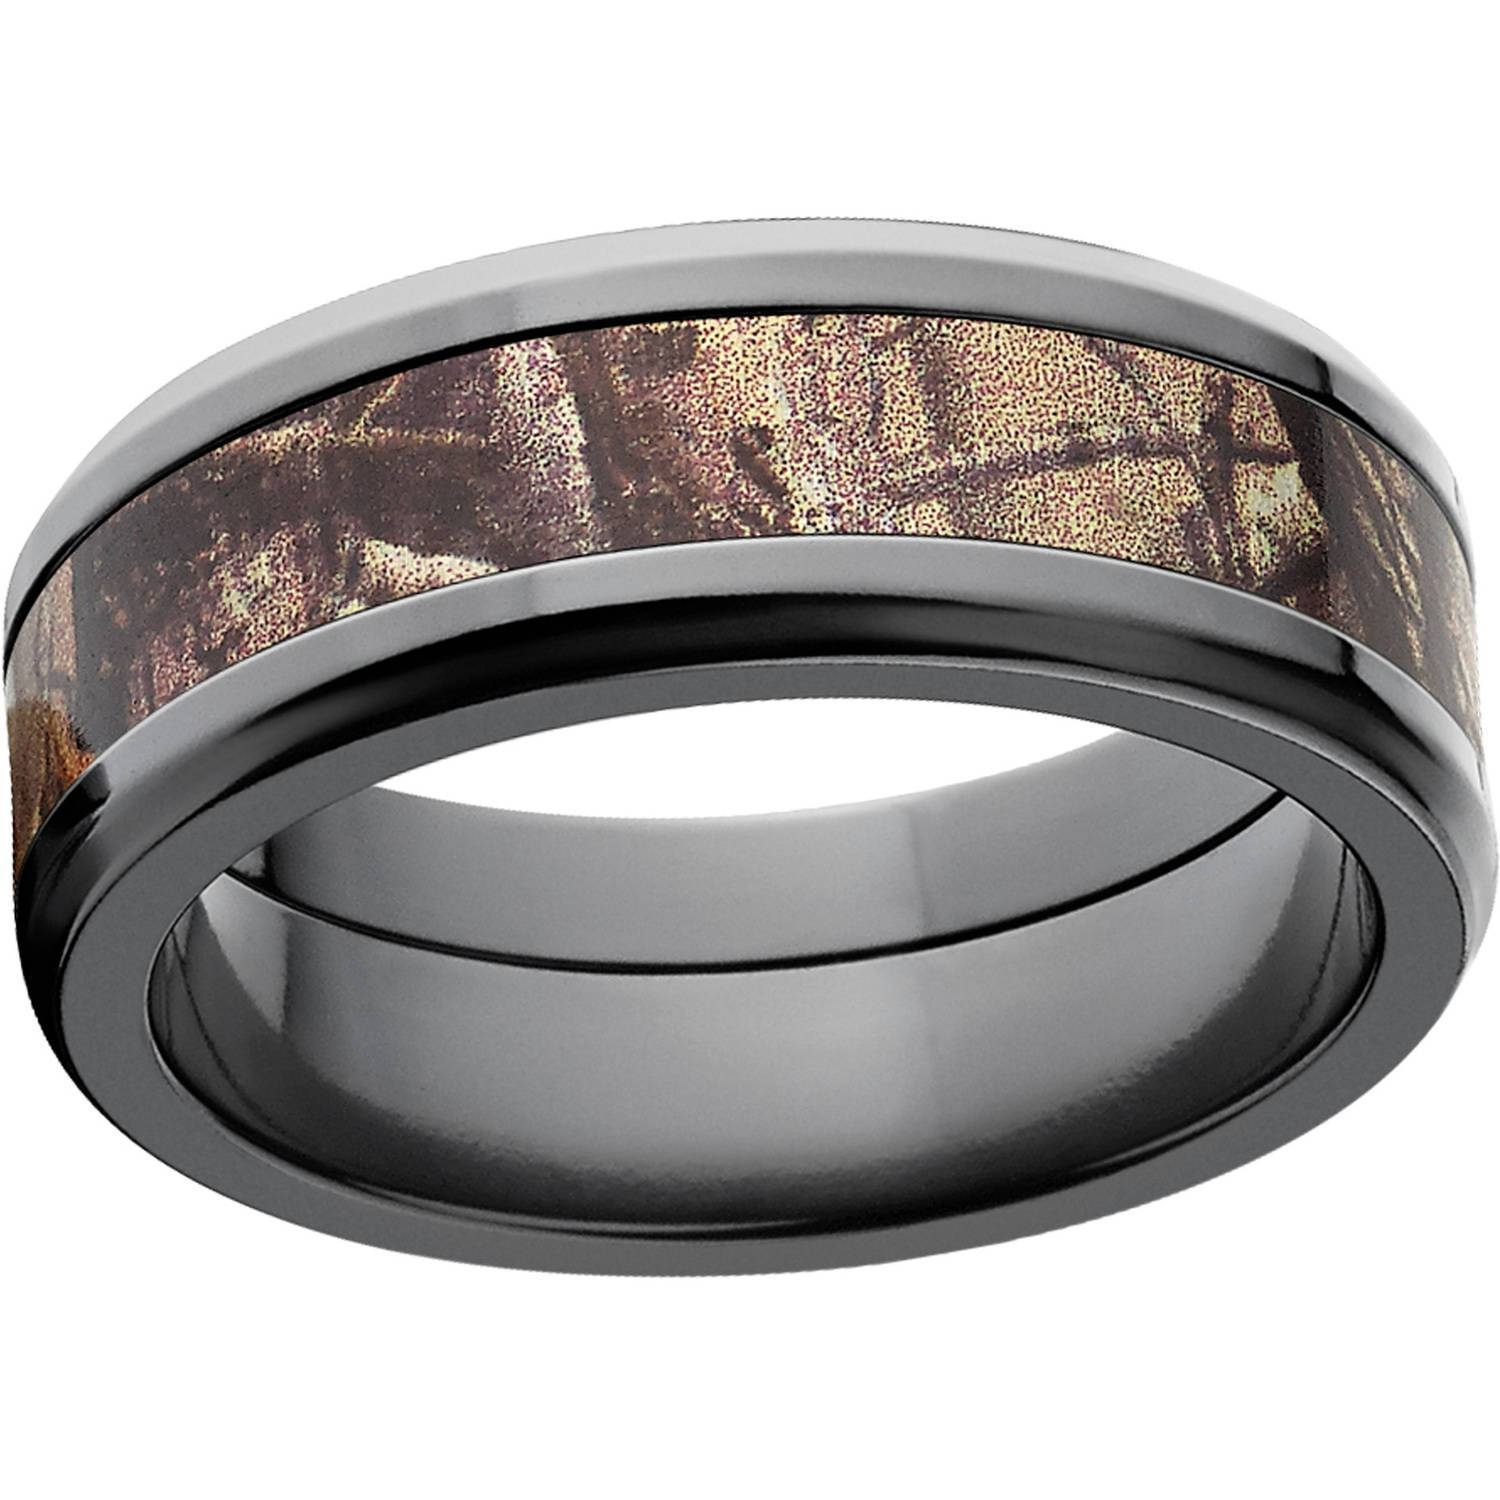 Realtree Ap Men's Camo 8Mm Black Zirconium Wedding Band – Walmart Throughout Black Zirconium Wedding Bands (View 14 of 15)